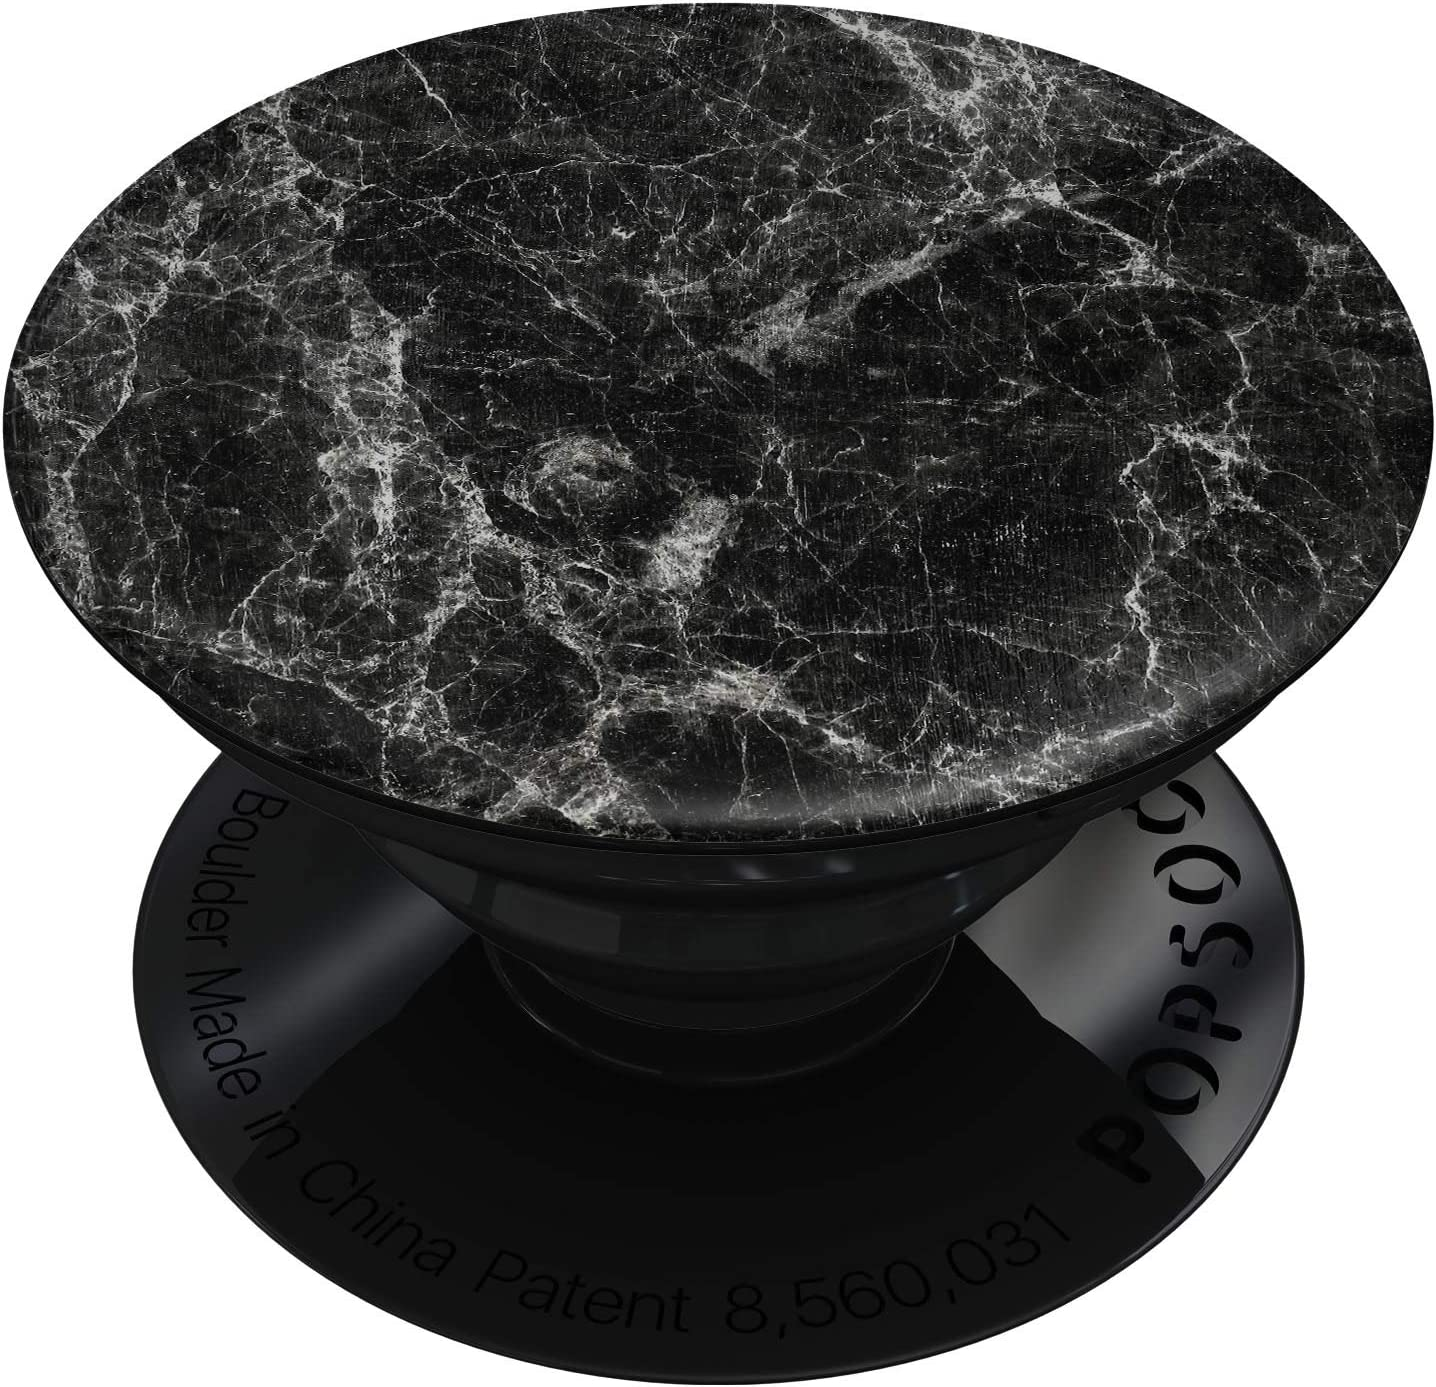 DesignSkinz Premium Decal Sticker Skin-Kit for PopSockets Smartphone Extendable Grip /& Stand Black Scratched Marble